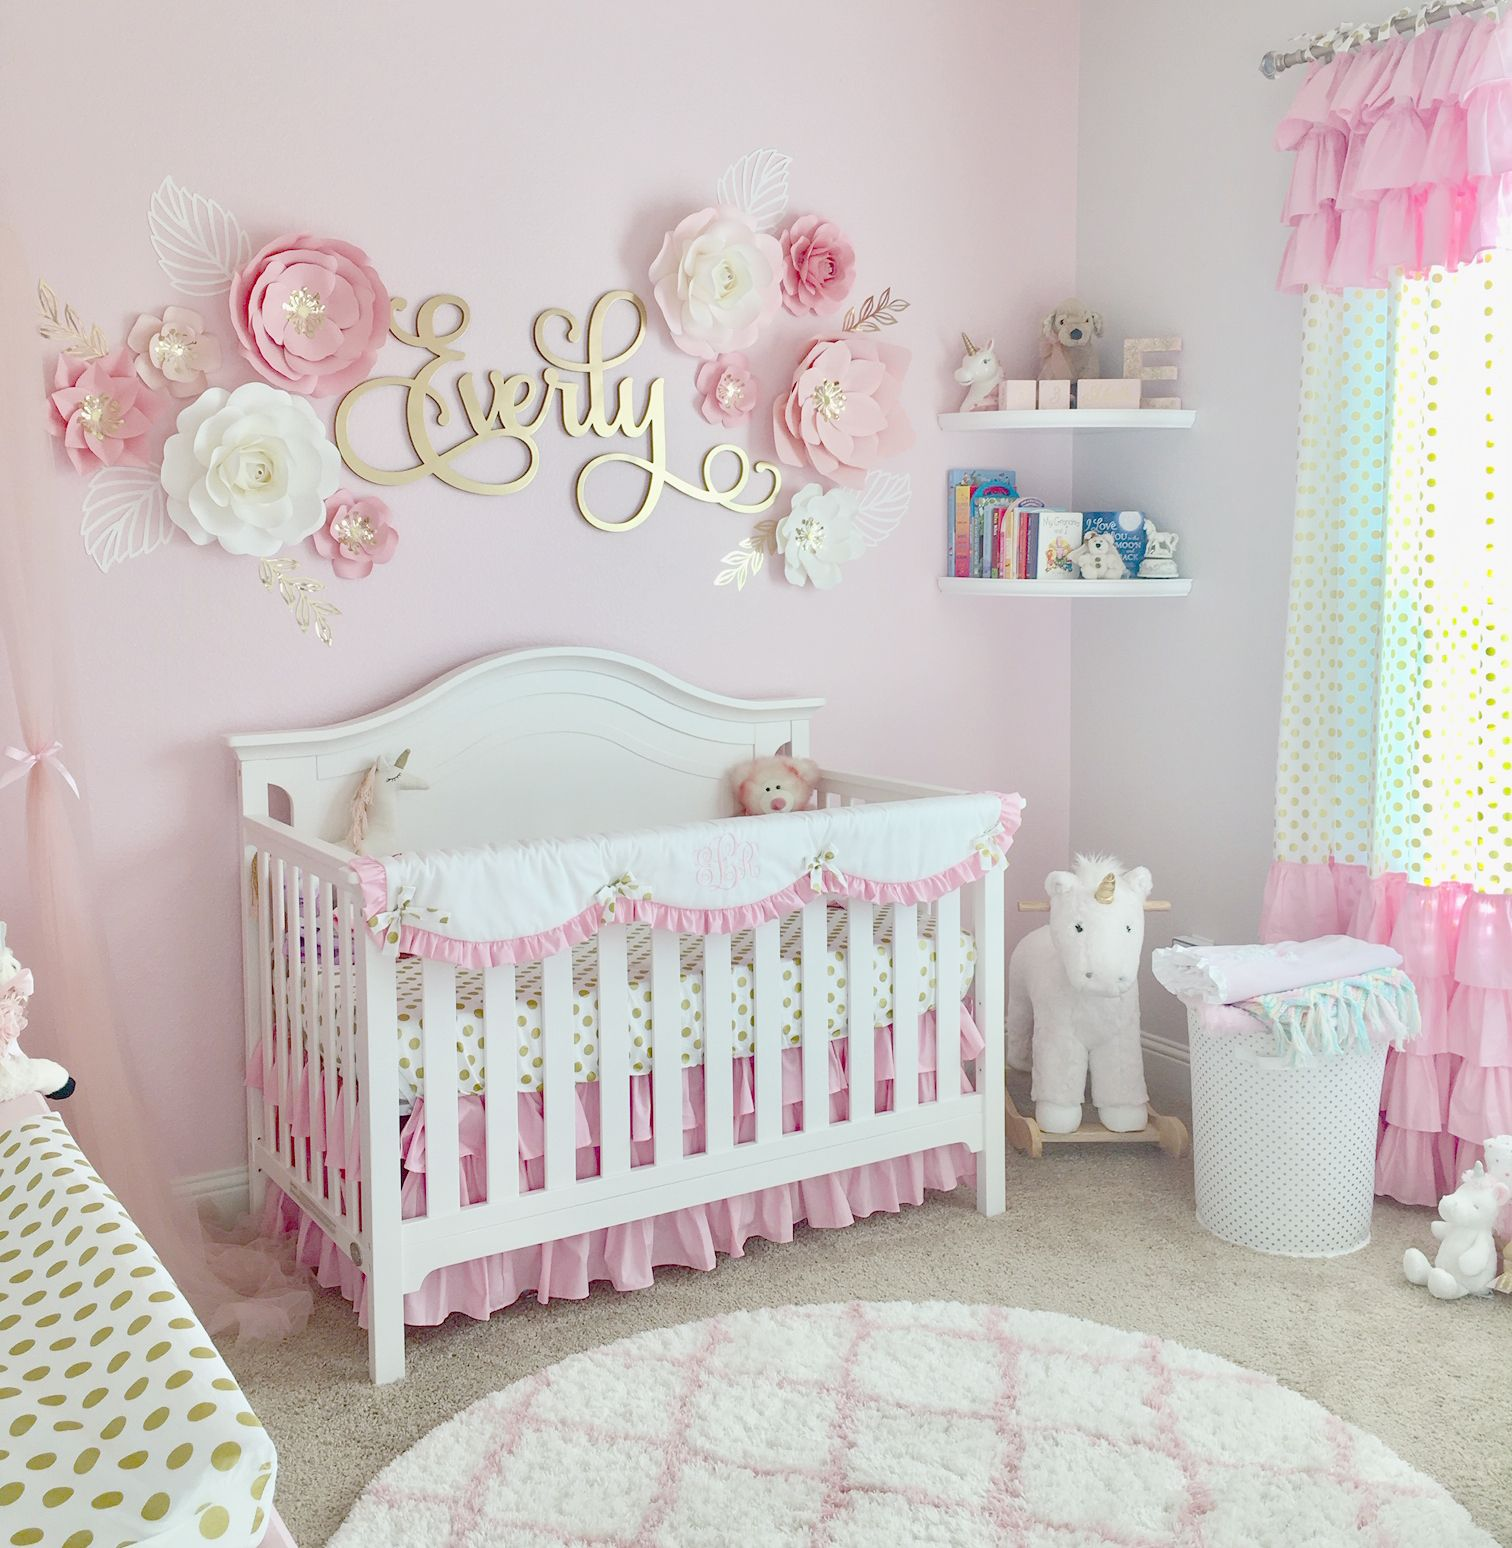 A Pink Gold Nursery For Baby Everly Pink Gold Nursery Pink Baby Room Girl Nursery Room